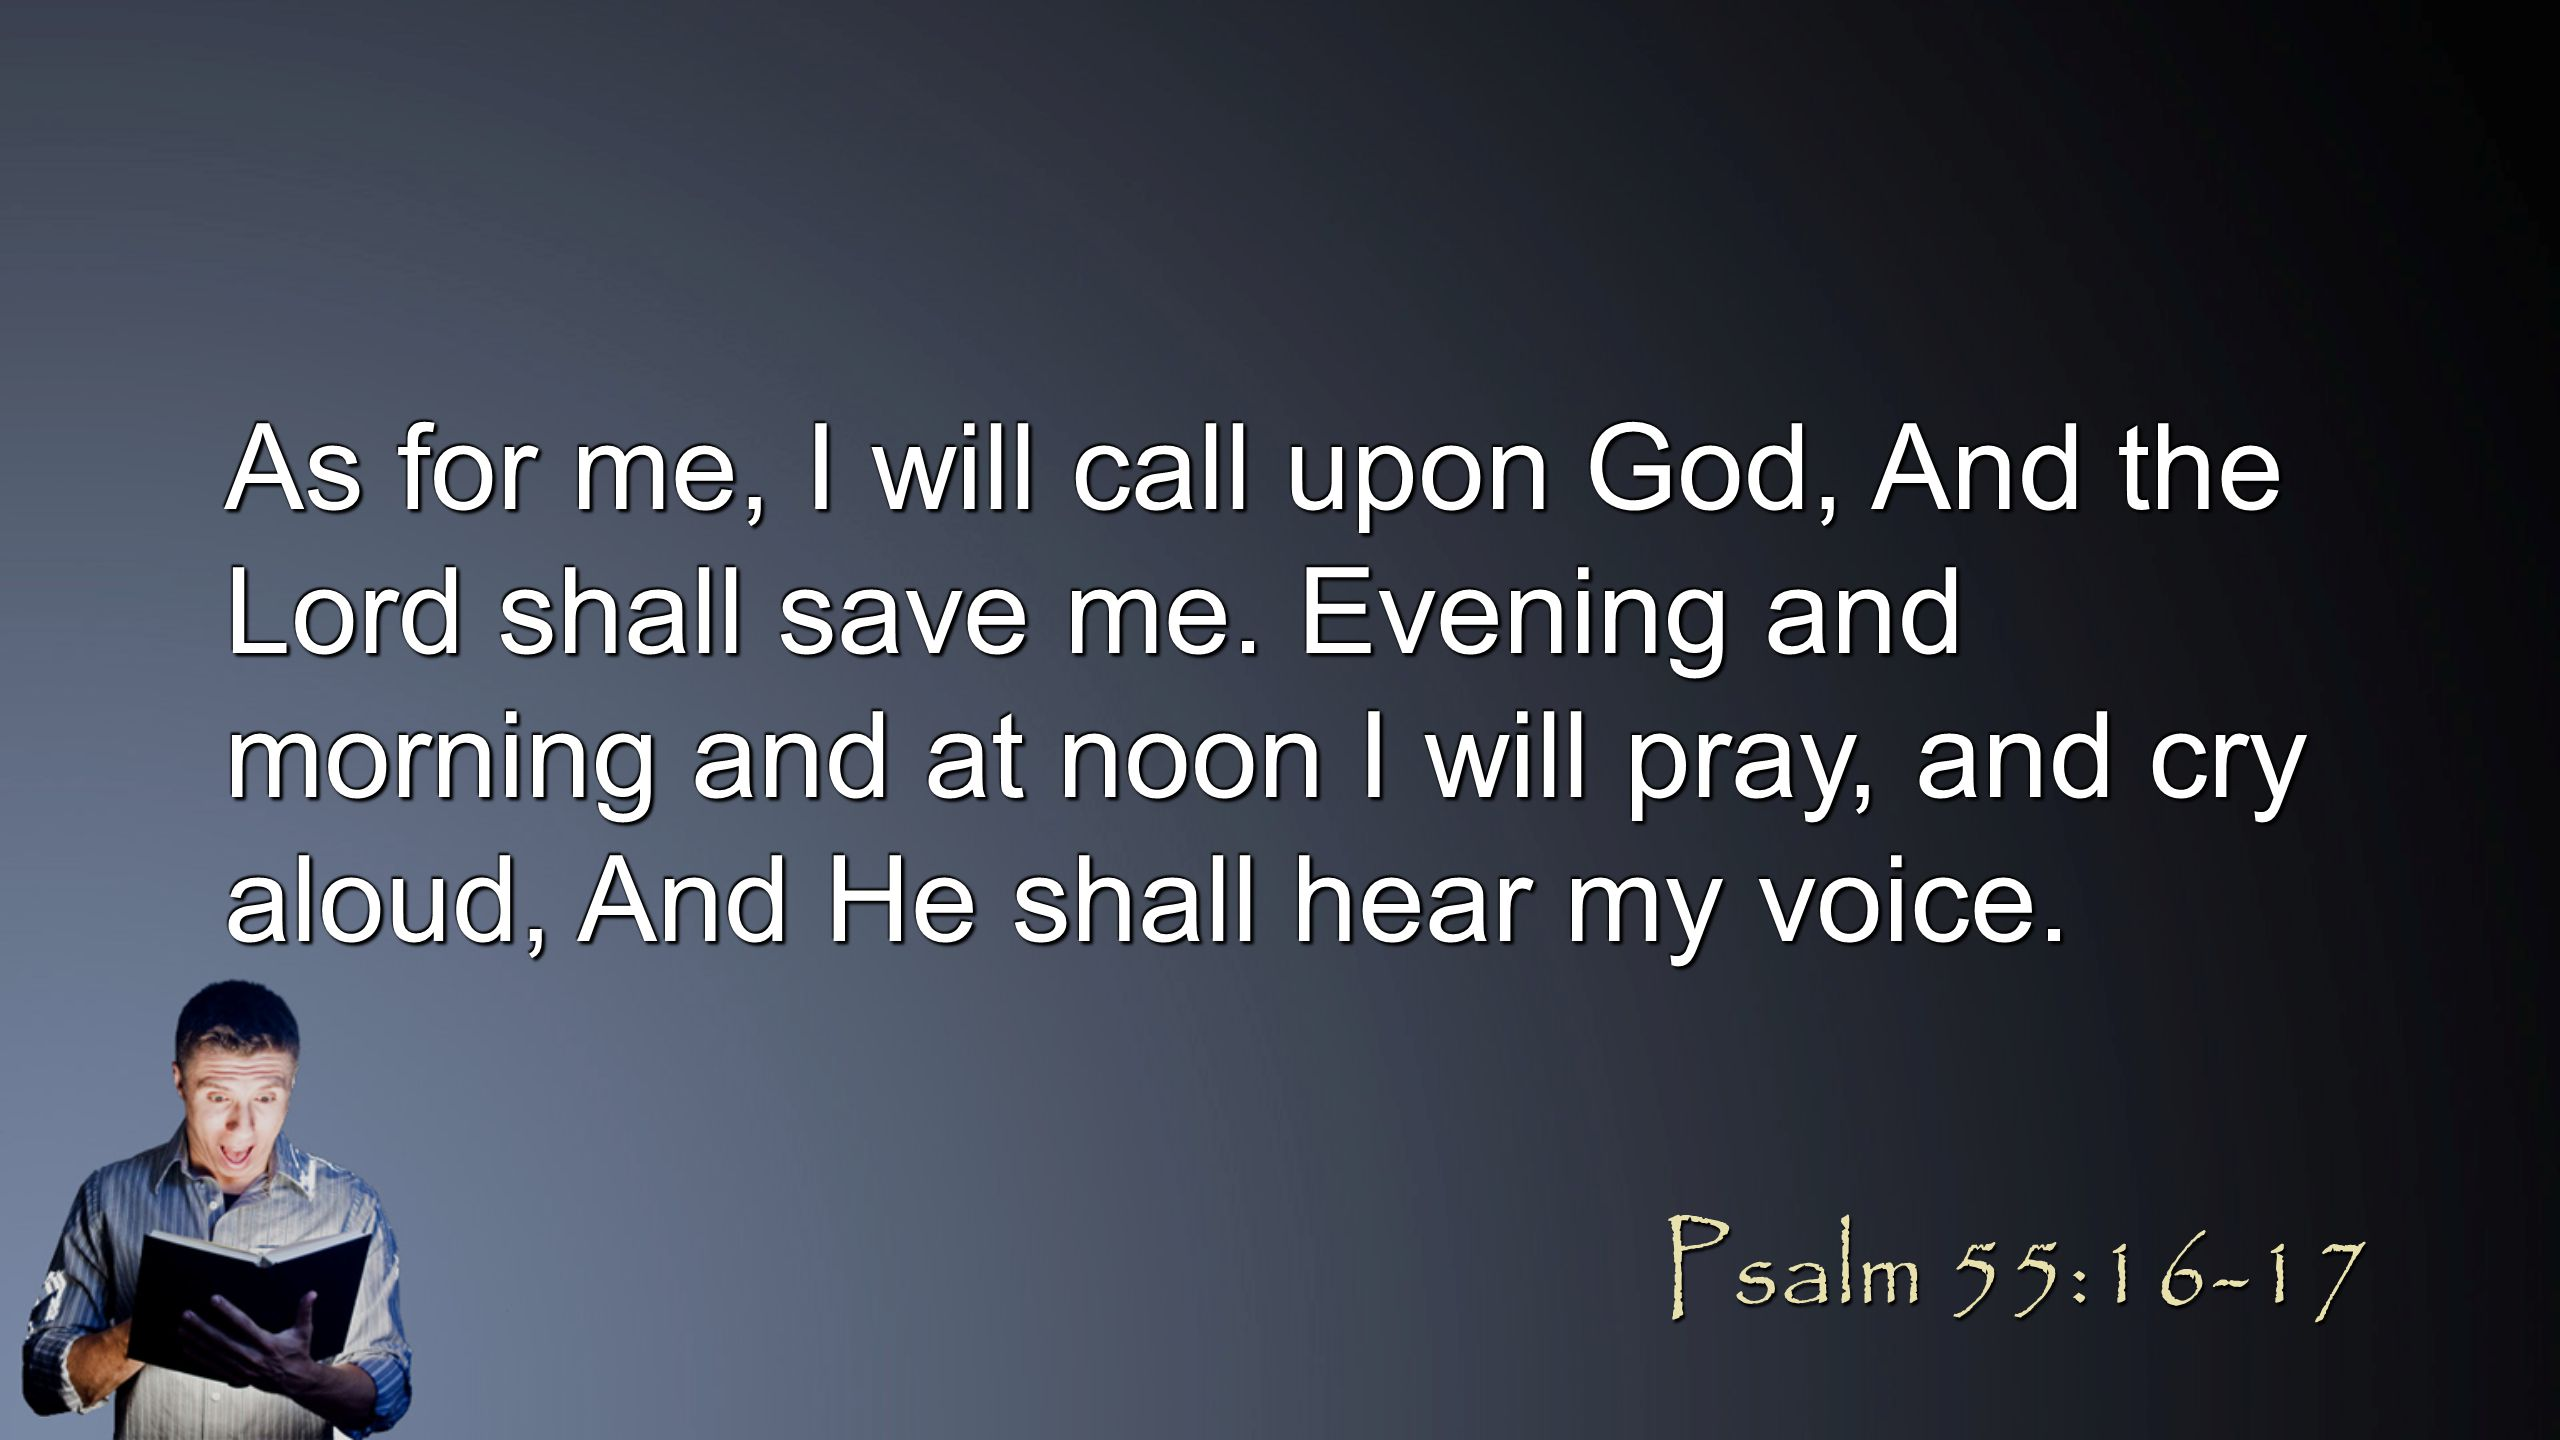 As for me, I will call upon God, And the Lord shall save me.